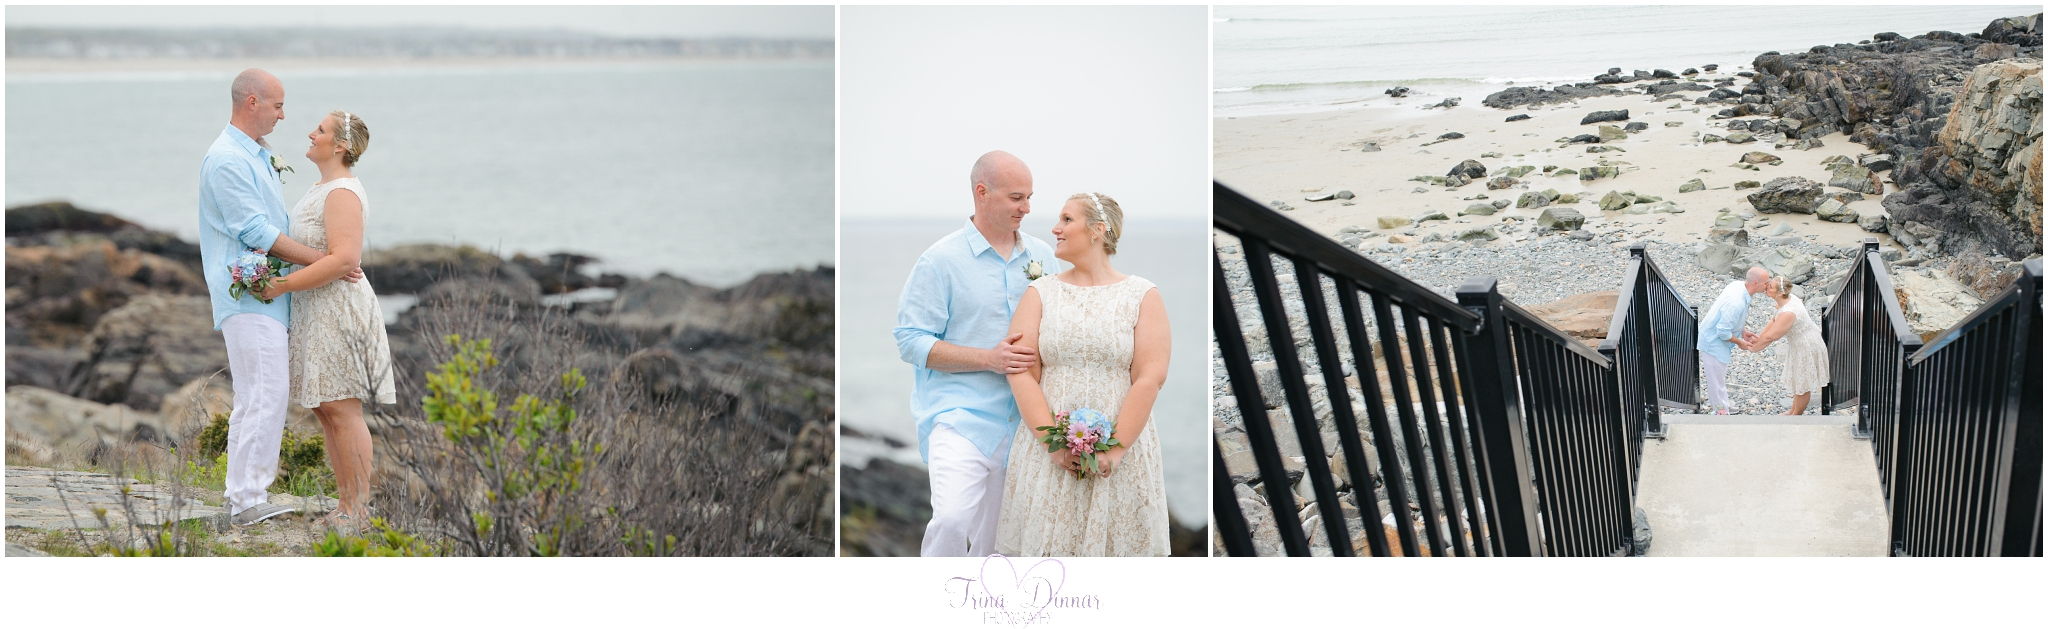 Southern Maine Beach Wedding Photographer, Trina Dinnar captures couples on their special day.